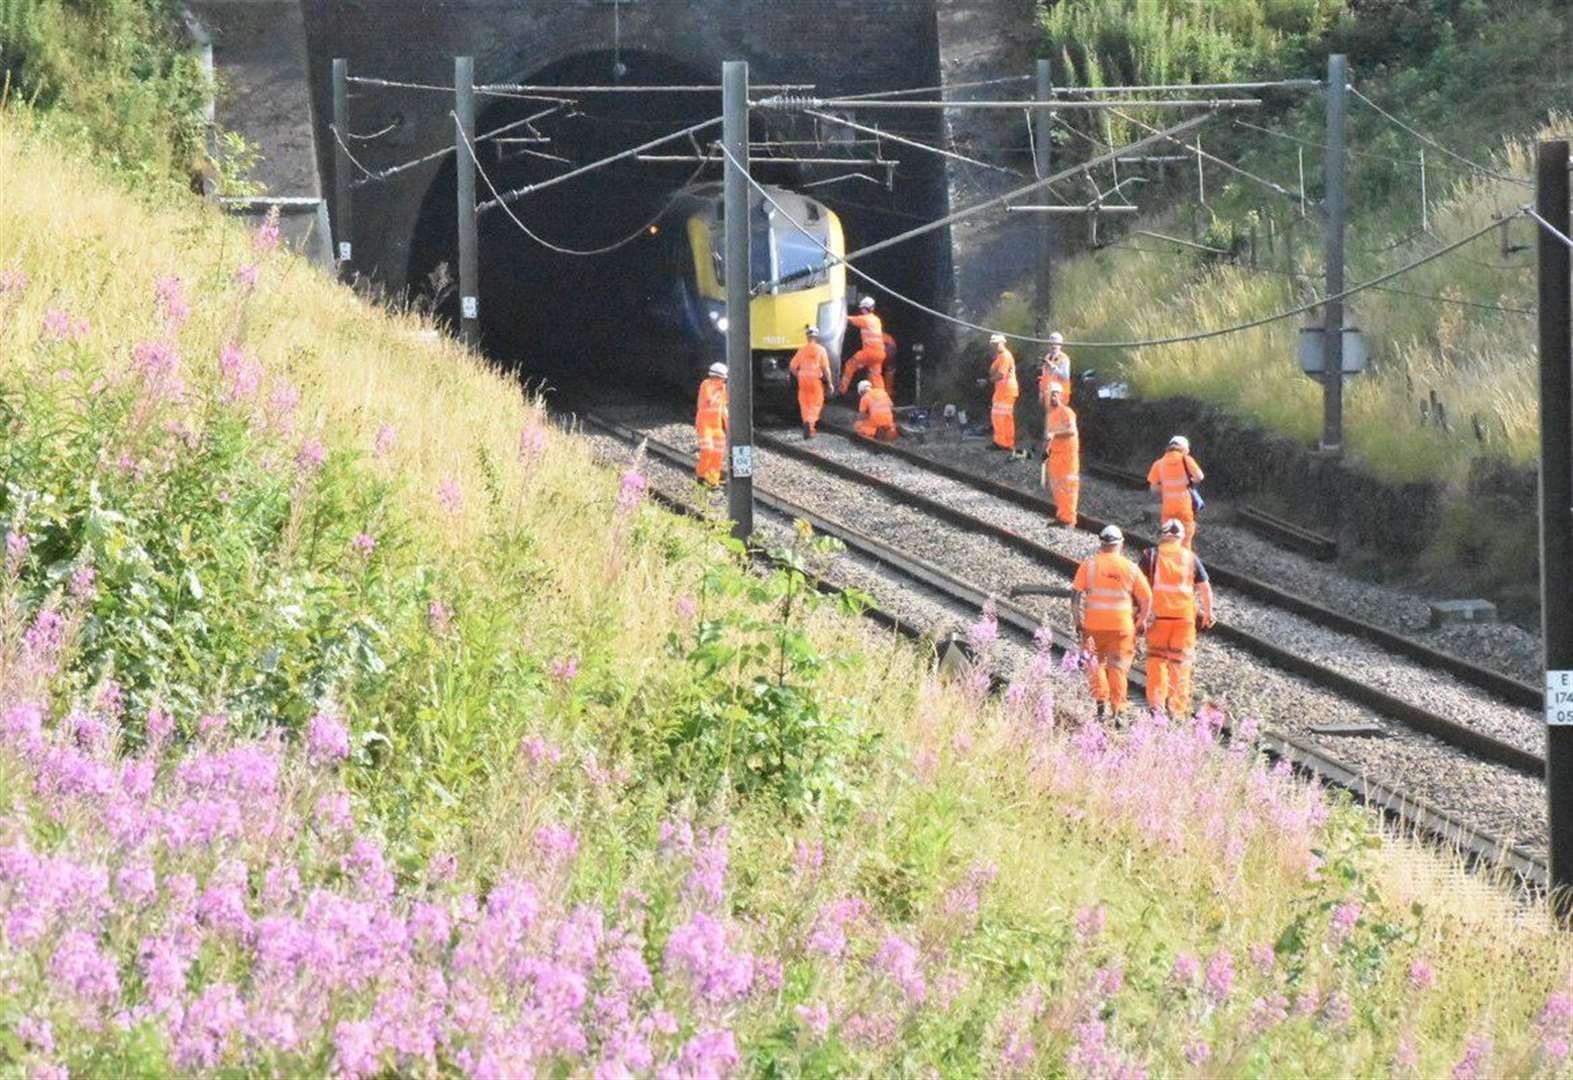 Train services back to normal after disruption caused by damaged cables near Grantham